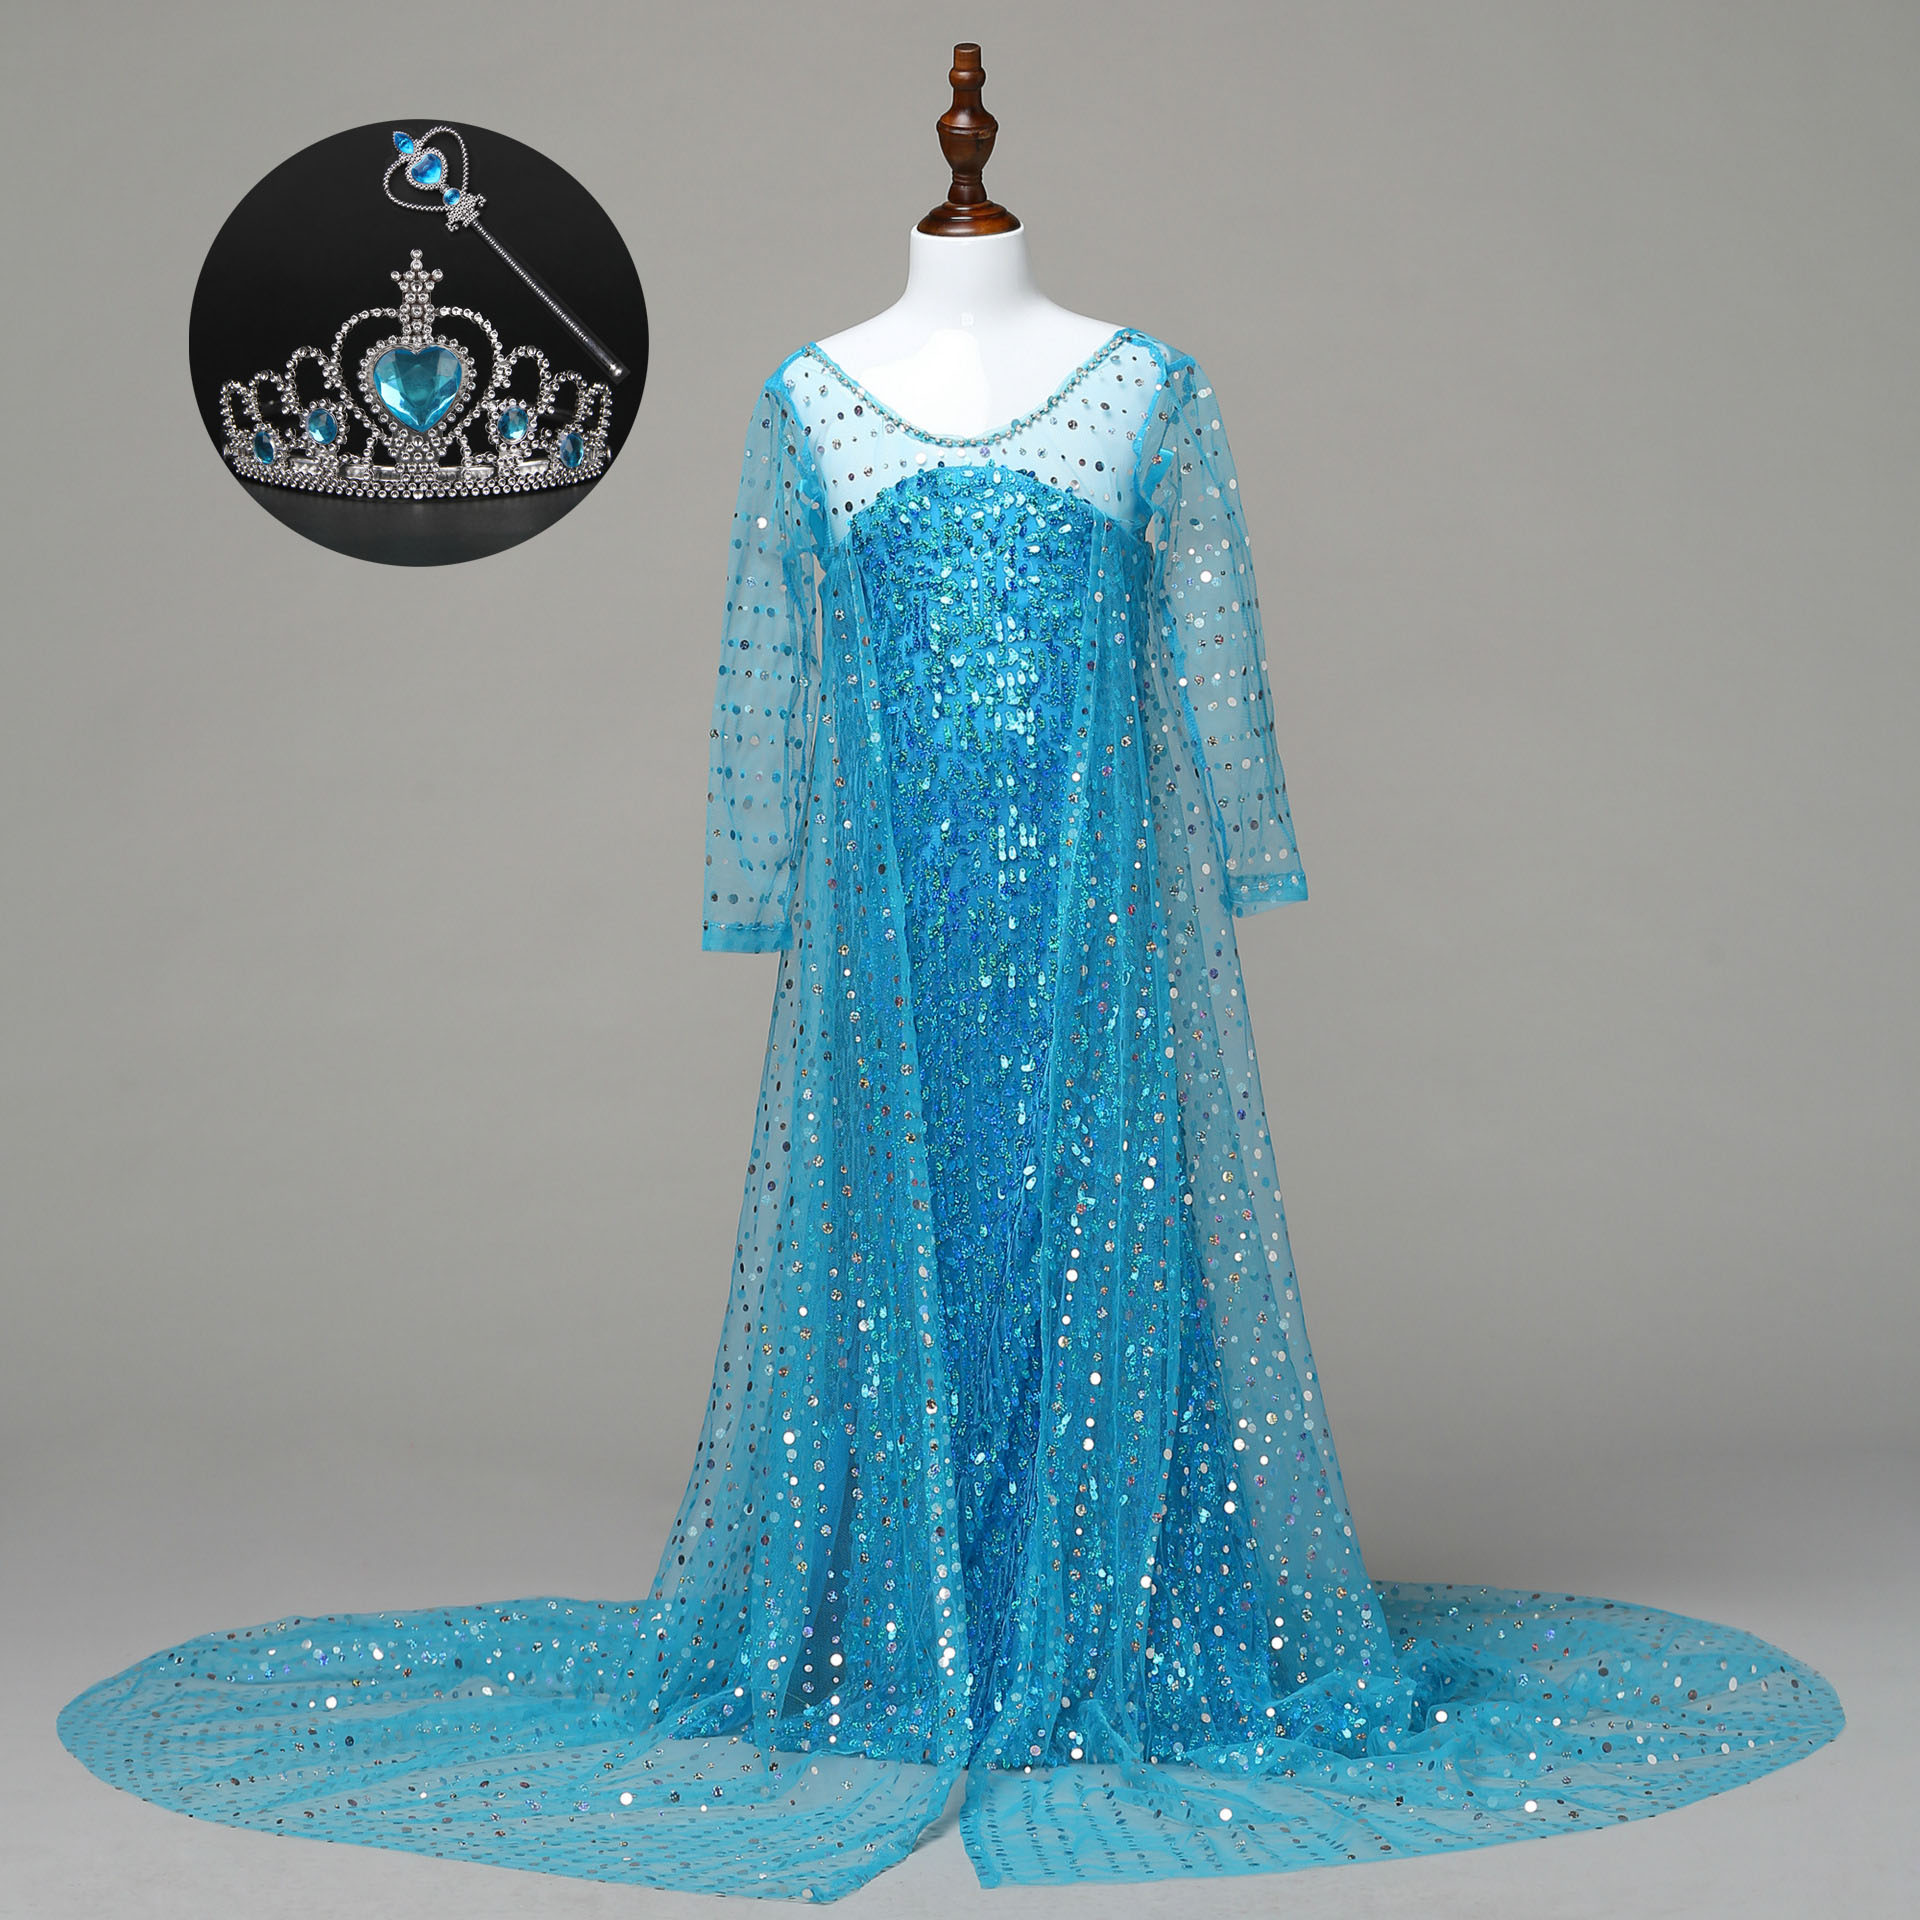 Gorgeous Carnival Kids Blue Princess Cosplay Party Wear Clothes Girls Elsa Costumes Sequin and Tulle Dress with Long Tail ems dhl free shipping new v neck baby girls kids sequin dress tulle dress with ruffles 5 colors princess dress casual wear